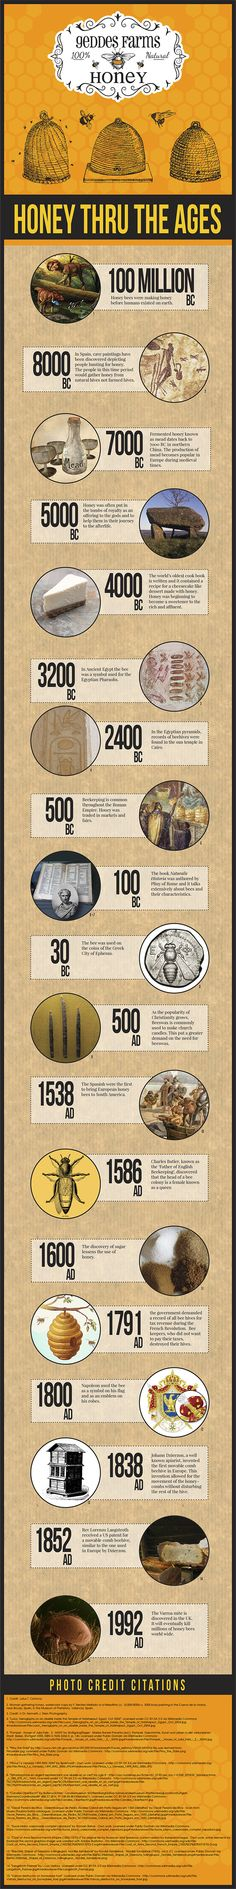 Honey Through the Ages Infographic | Geddes Farms